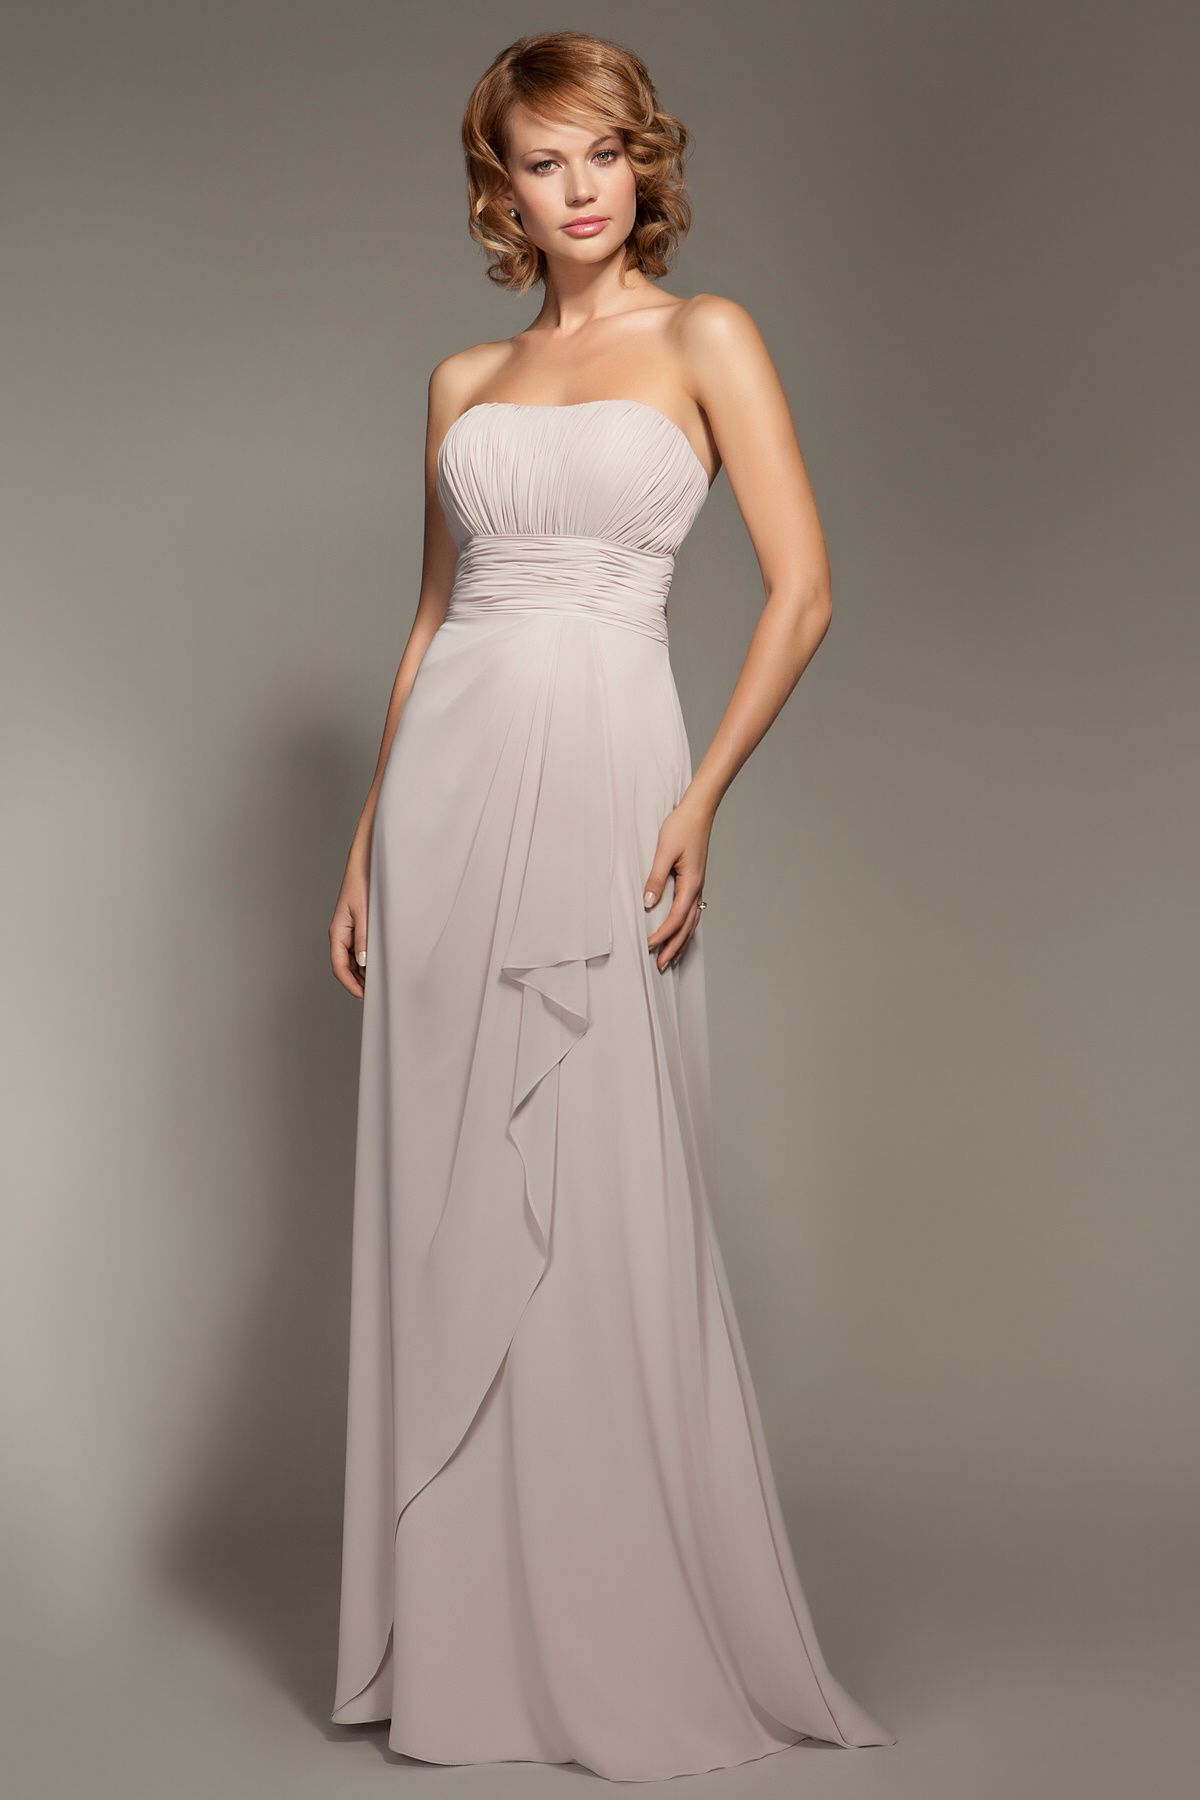 Mark lesley bridesmaids xx pinterest weddings award winning bridal designer mark lesley has just launched his new collection of bridesmaid dresses for your best girls and we can wait to show it to you ombrellifo Choice Image